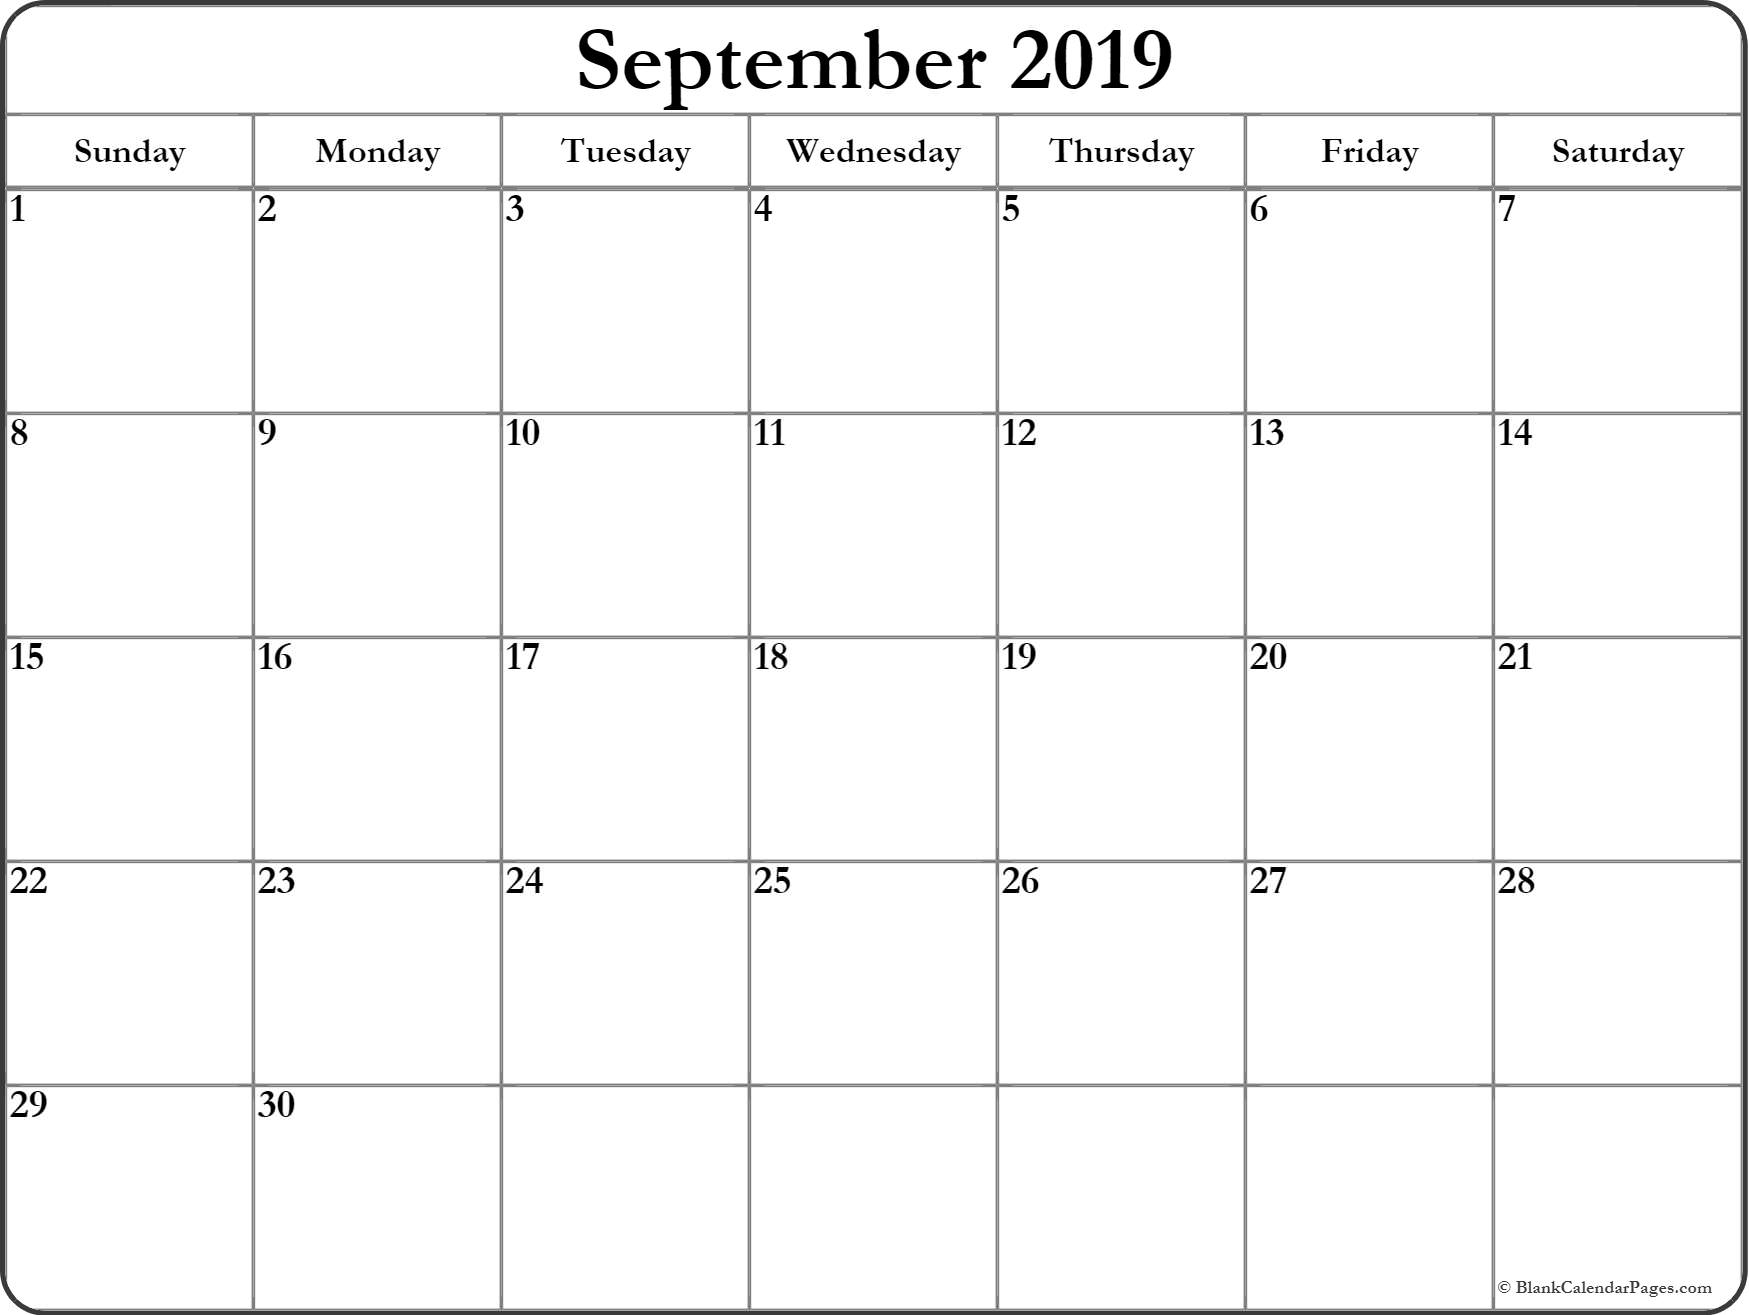 September 2019 Calendar | Free Printable Monthly Calendars throughout September Printable Monthly Calendars Blank